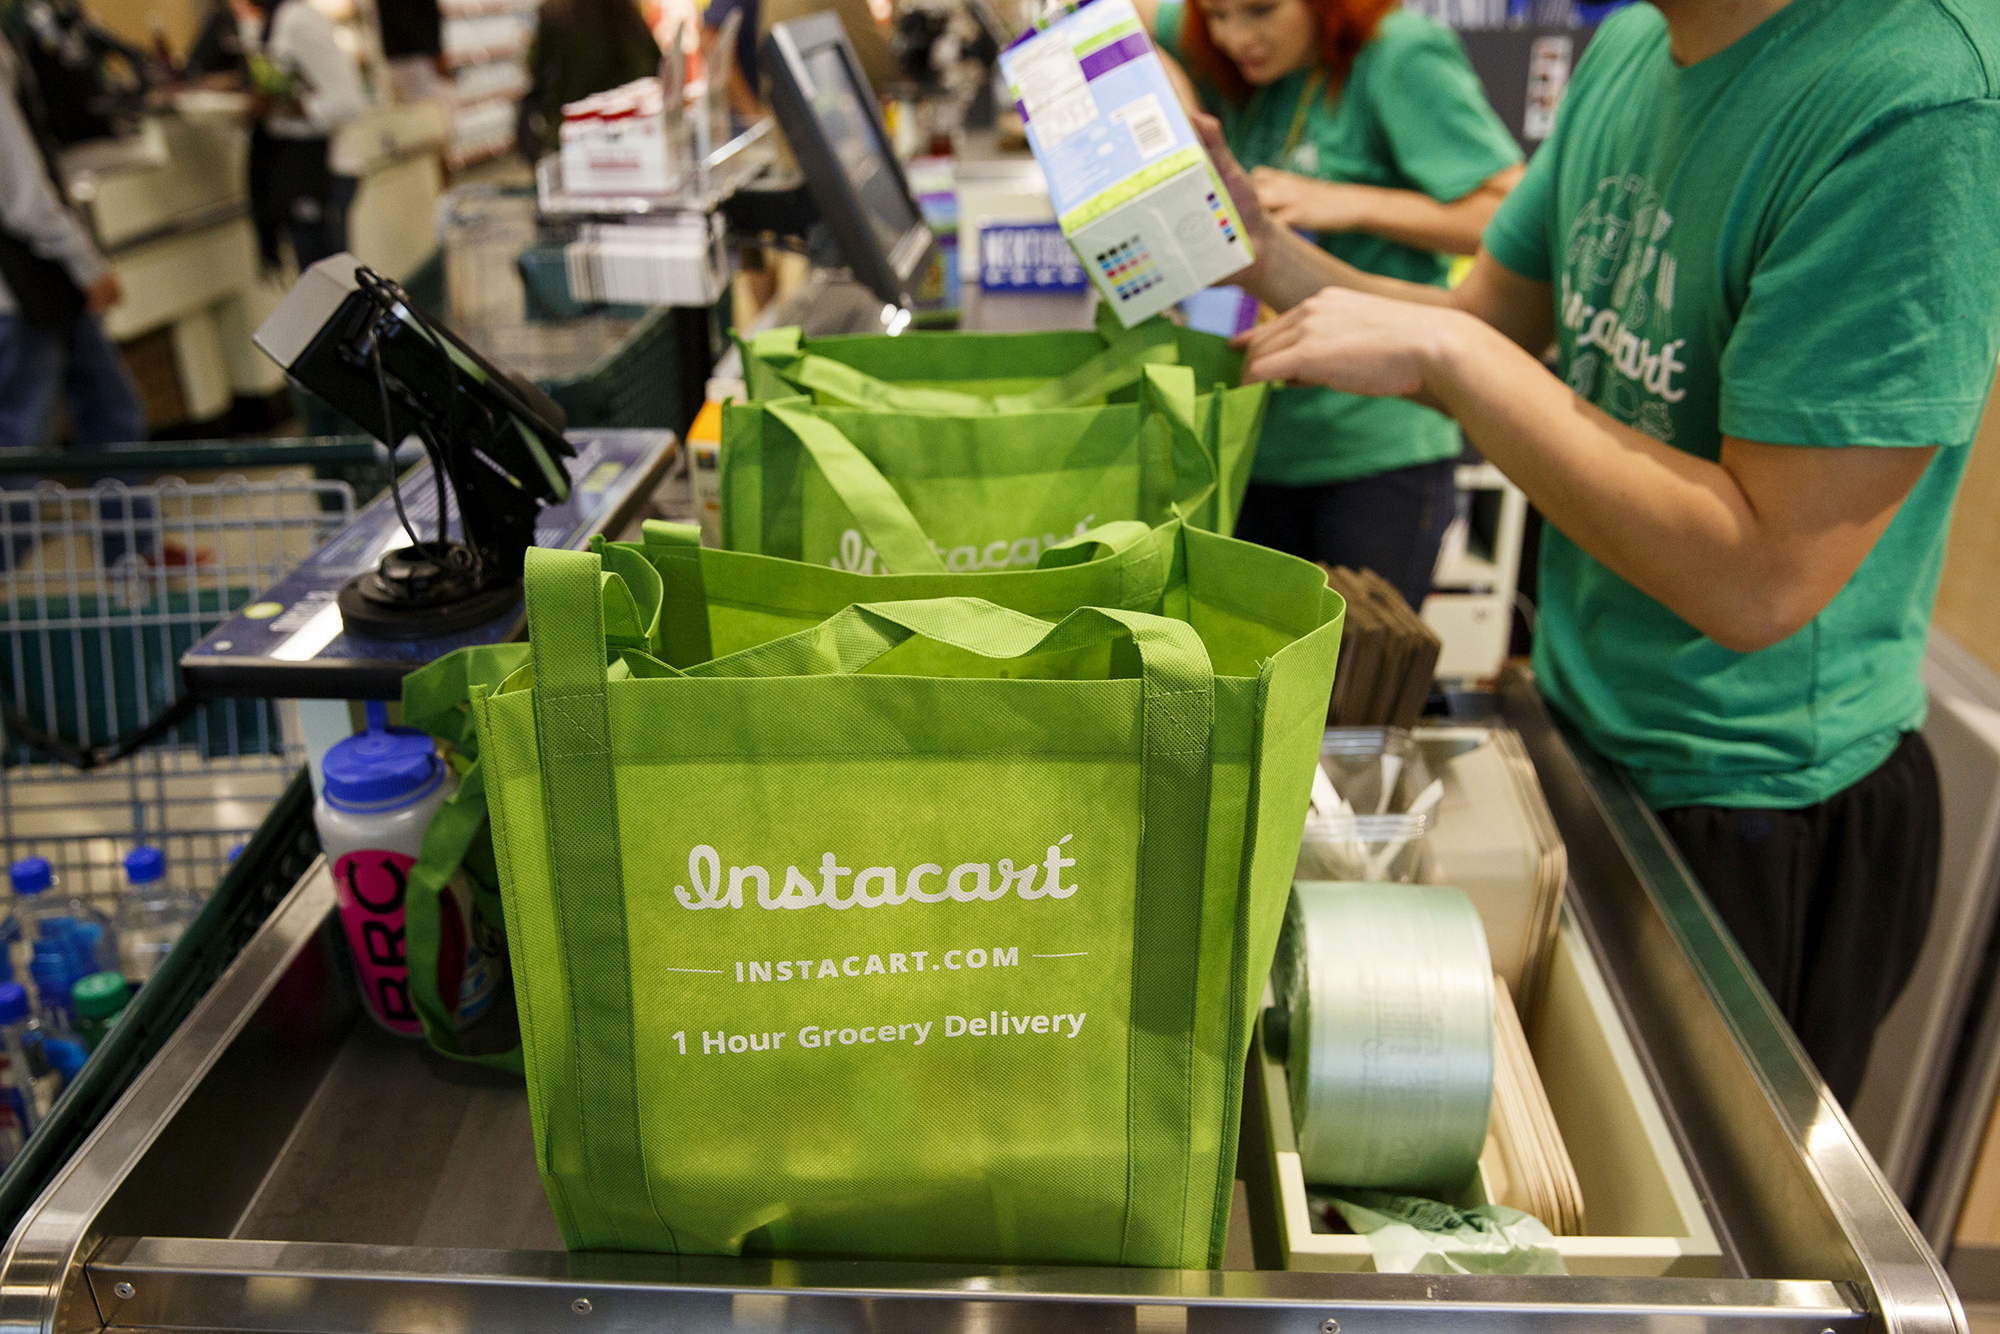 InstaCart employees fulfill orders for delivery at a Whole Foods Market Inc. store in downtown Los Angeles on Nov. 9, 2015. (Patrick T. Fallon/Bloomberg via Getty Images via CNN)